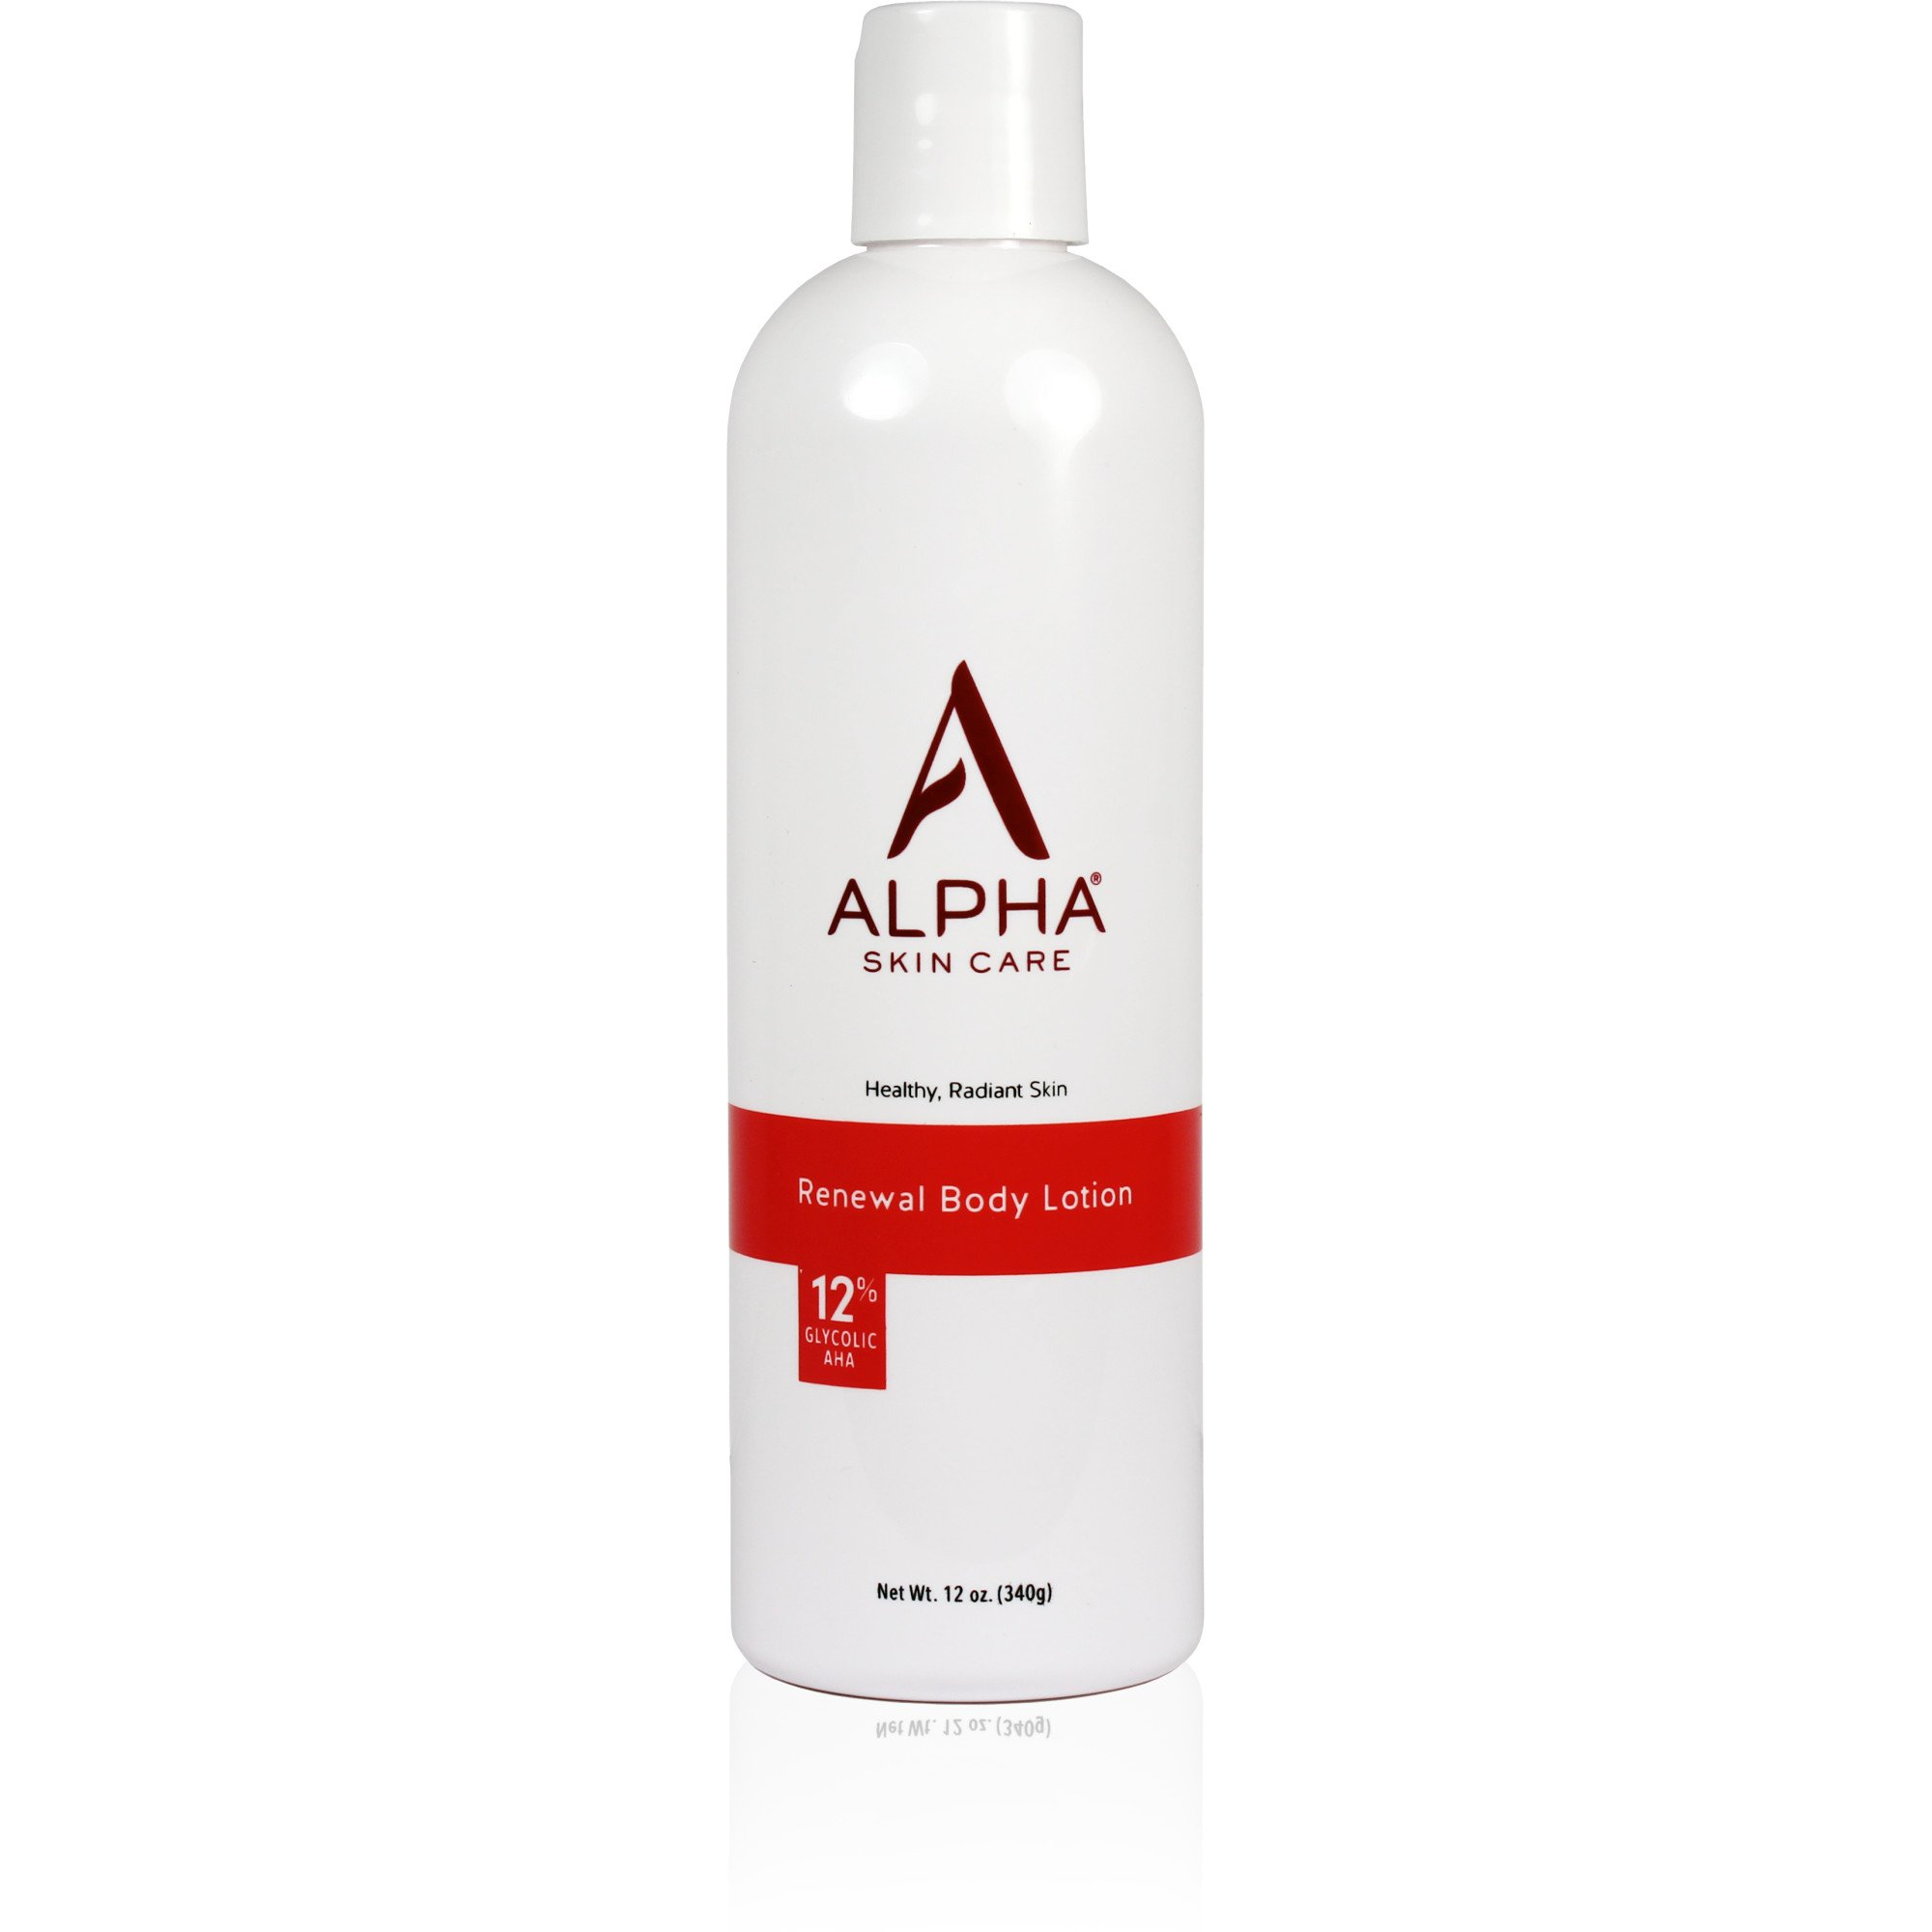 Alpha Skin Care - Renewal Body Lotion, 12% Glycolic AHA, Supports Healthy Radiant Skin| Fragrance-Free and Paraben-Free| 12-Ounce by Alpha Skin Care